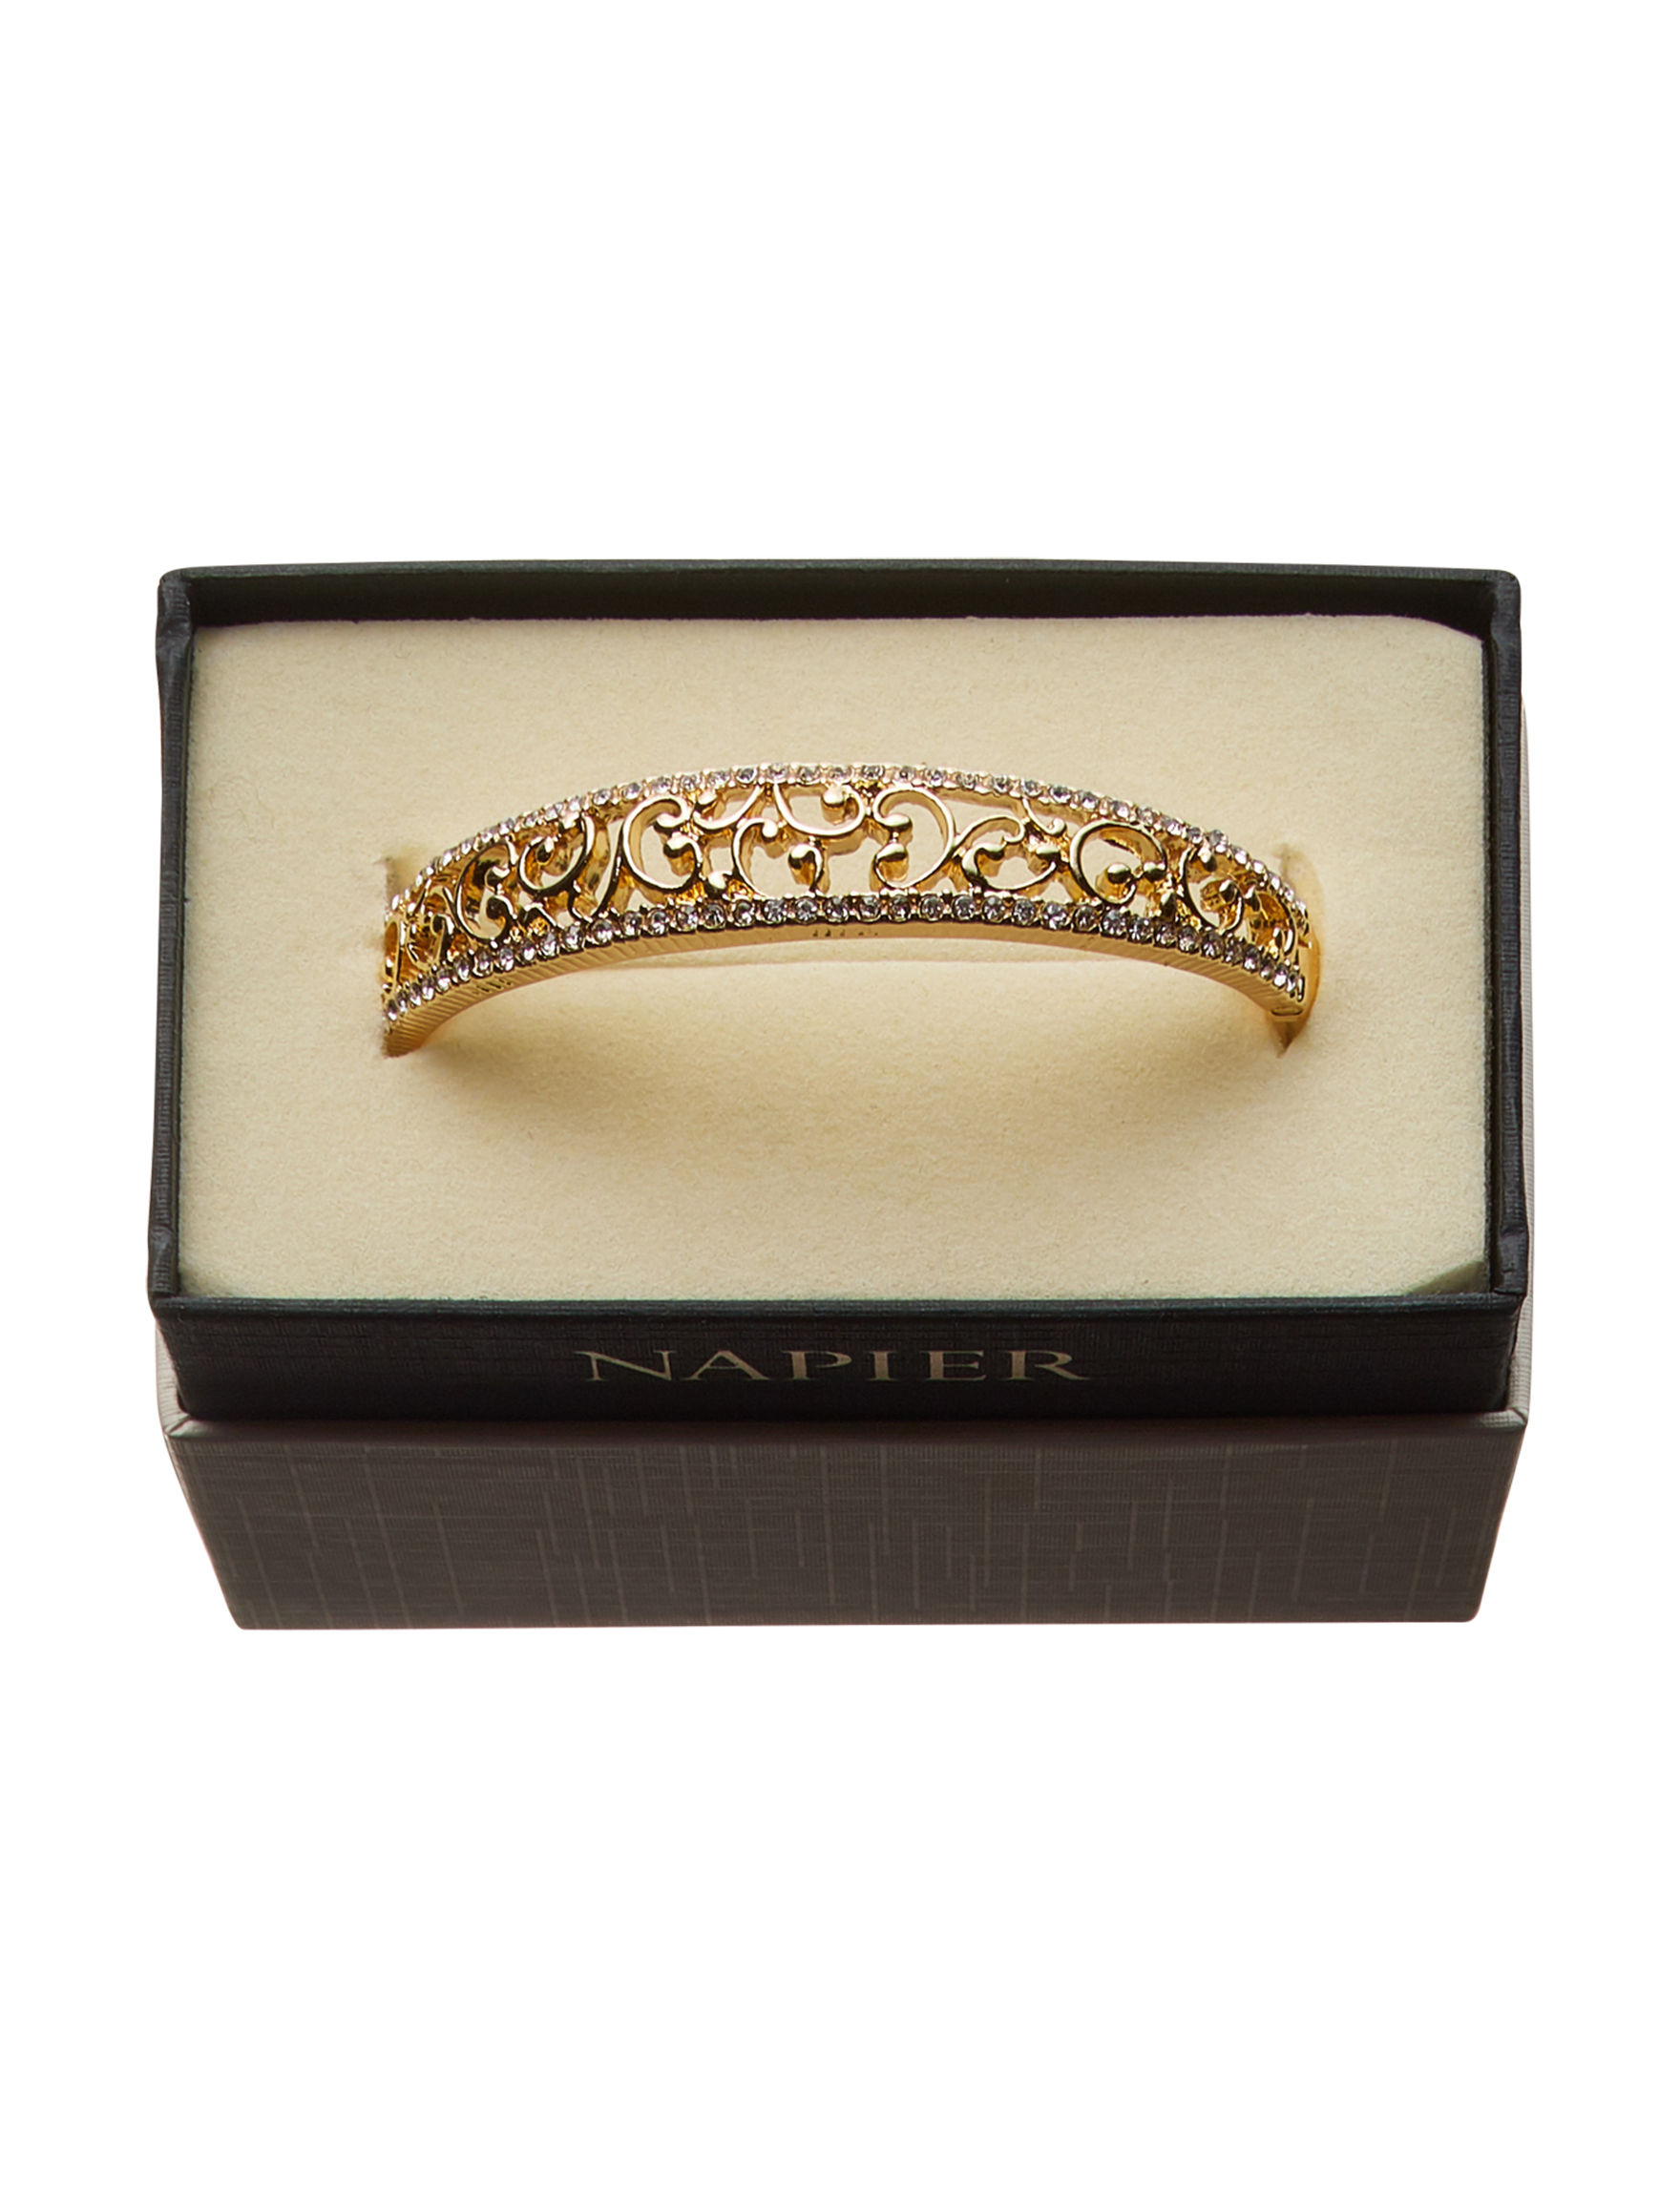 Napier Gold Bracelets Fashion Jewelry